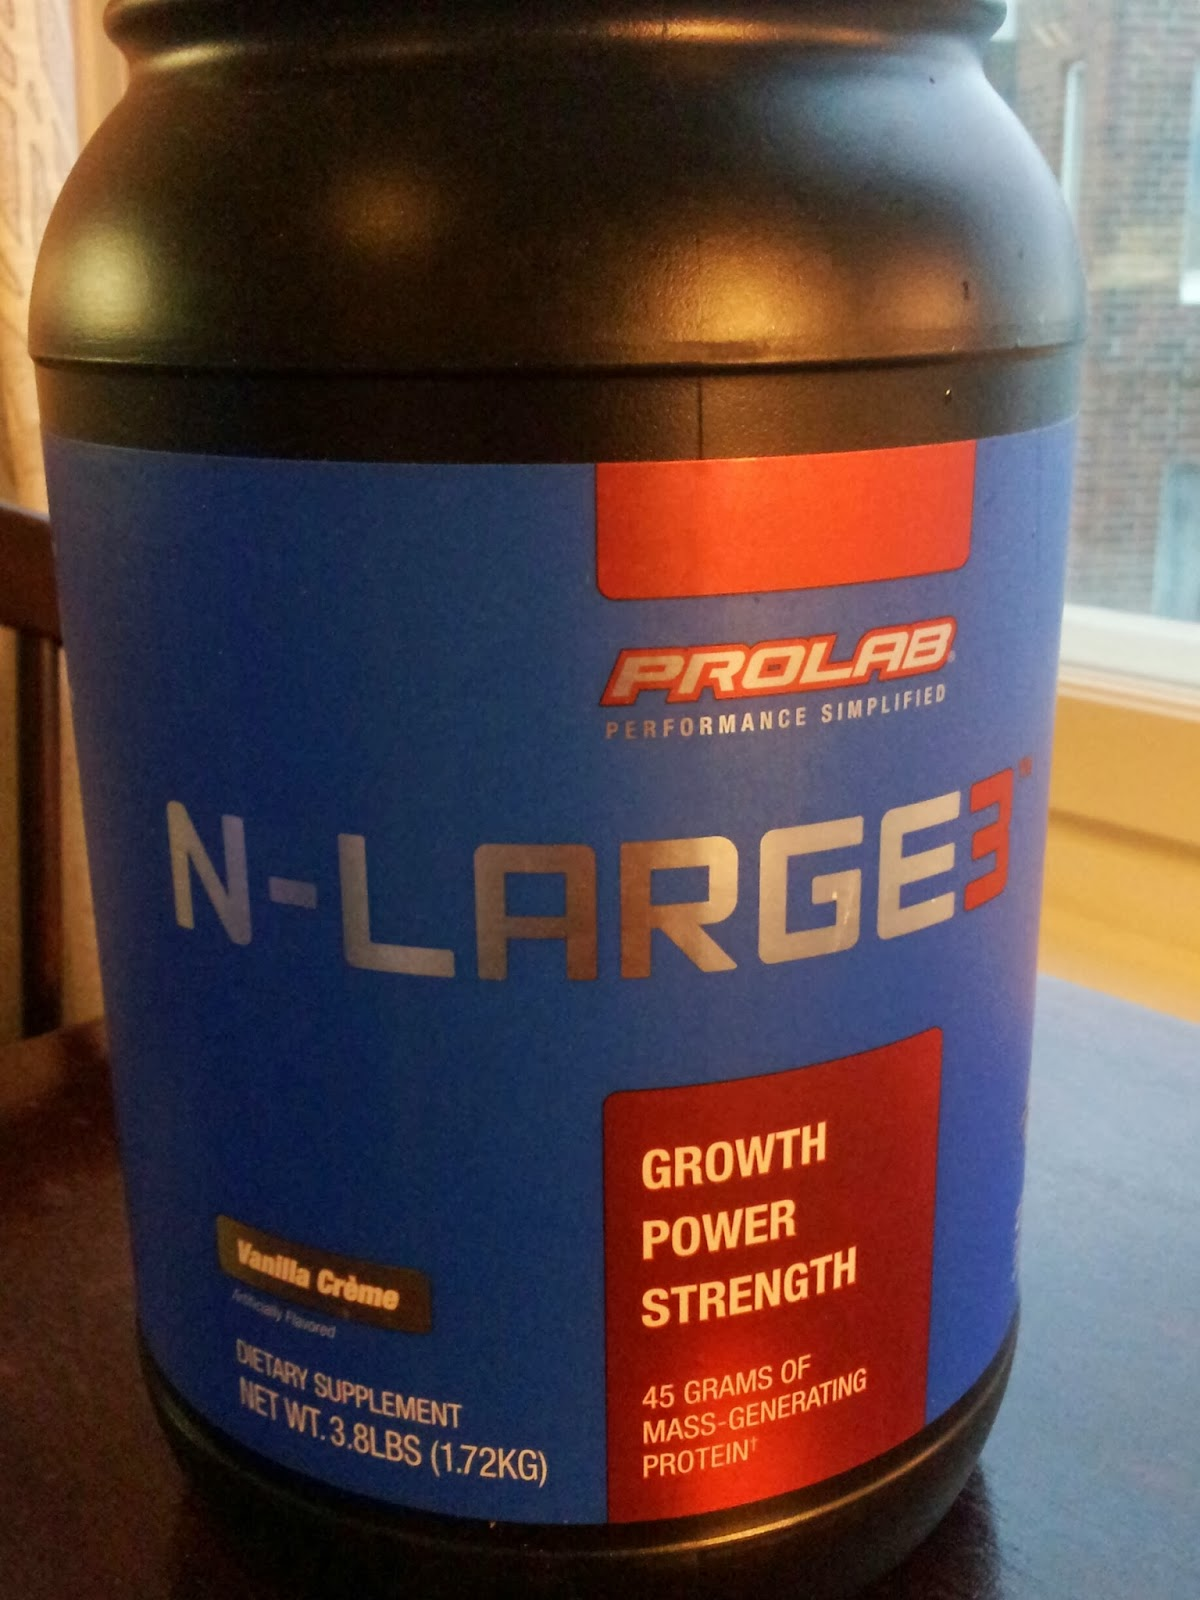 Prolab N Large 3 Chocolate - See Details Here